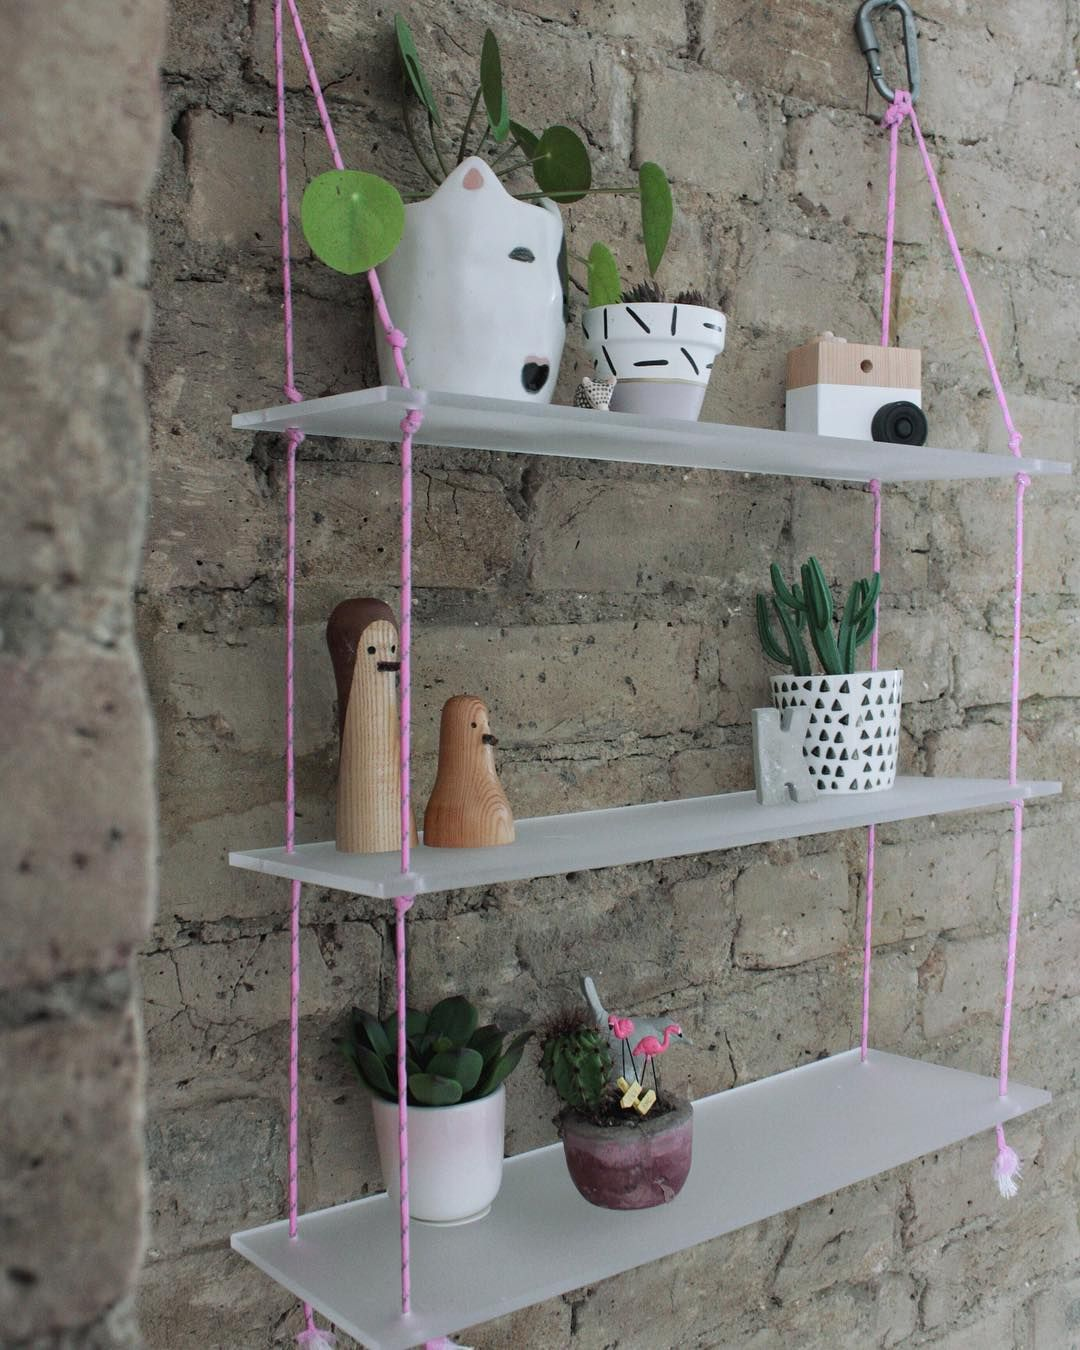 New On The Blog How To Make These Acrylic Sheet And Paracord Rope Shelves When The People From The Plastic Sheets Shop Asked Me To Come Up With A Project Using